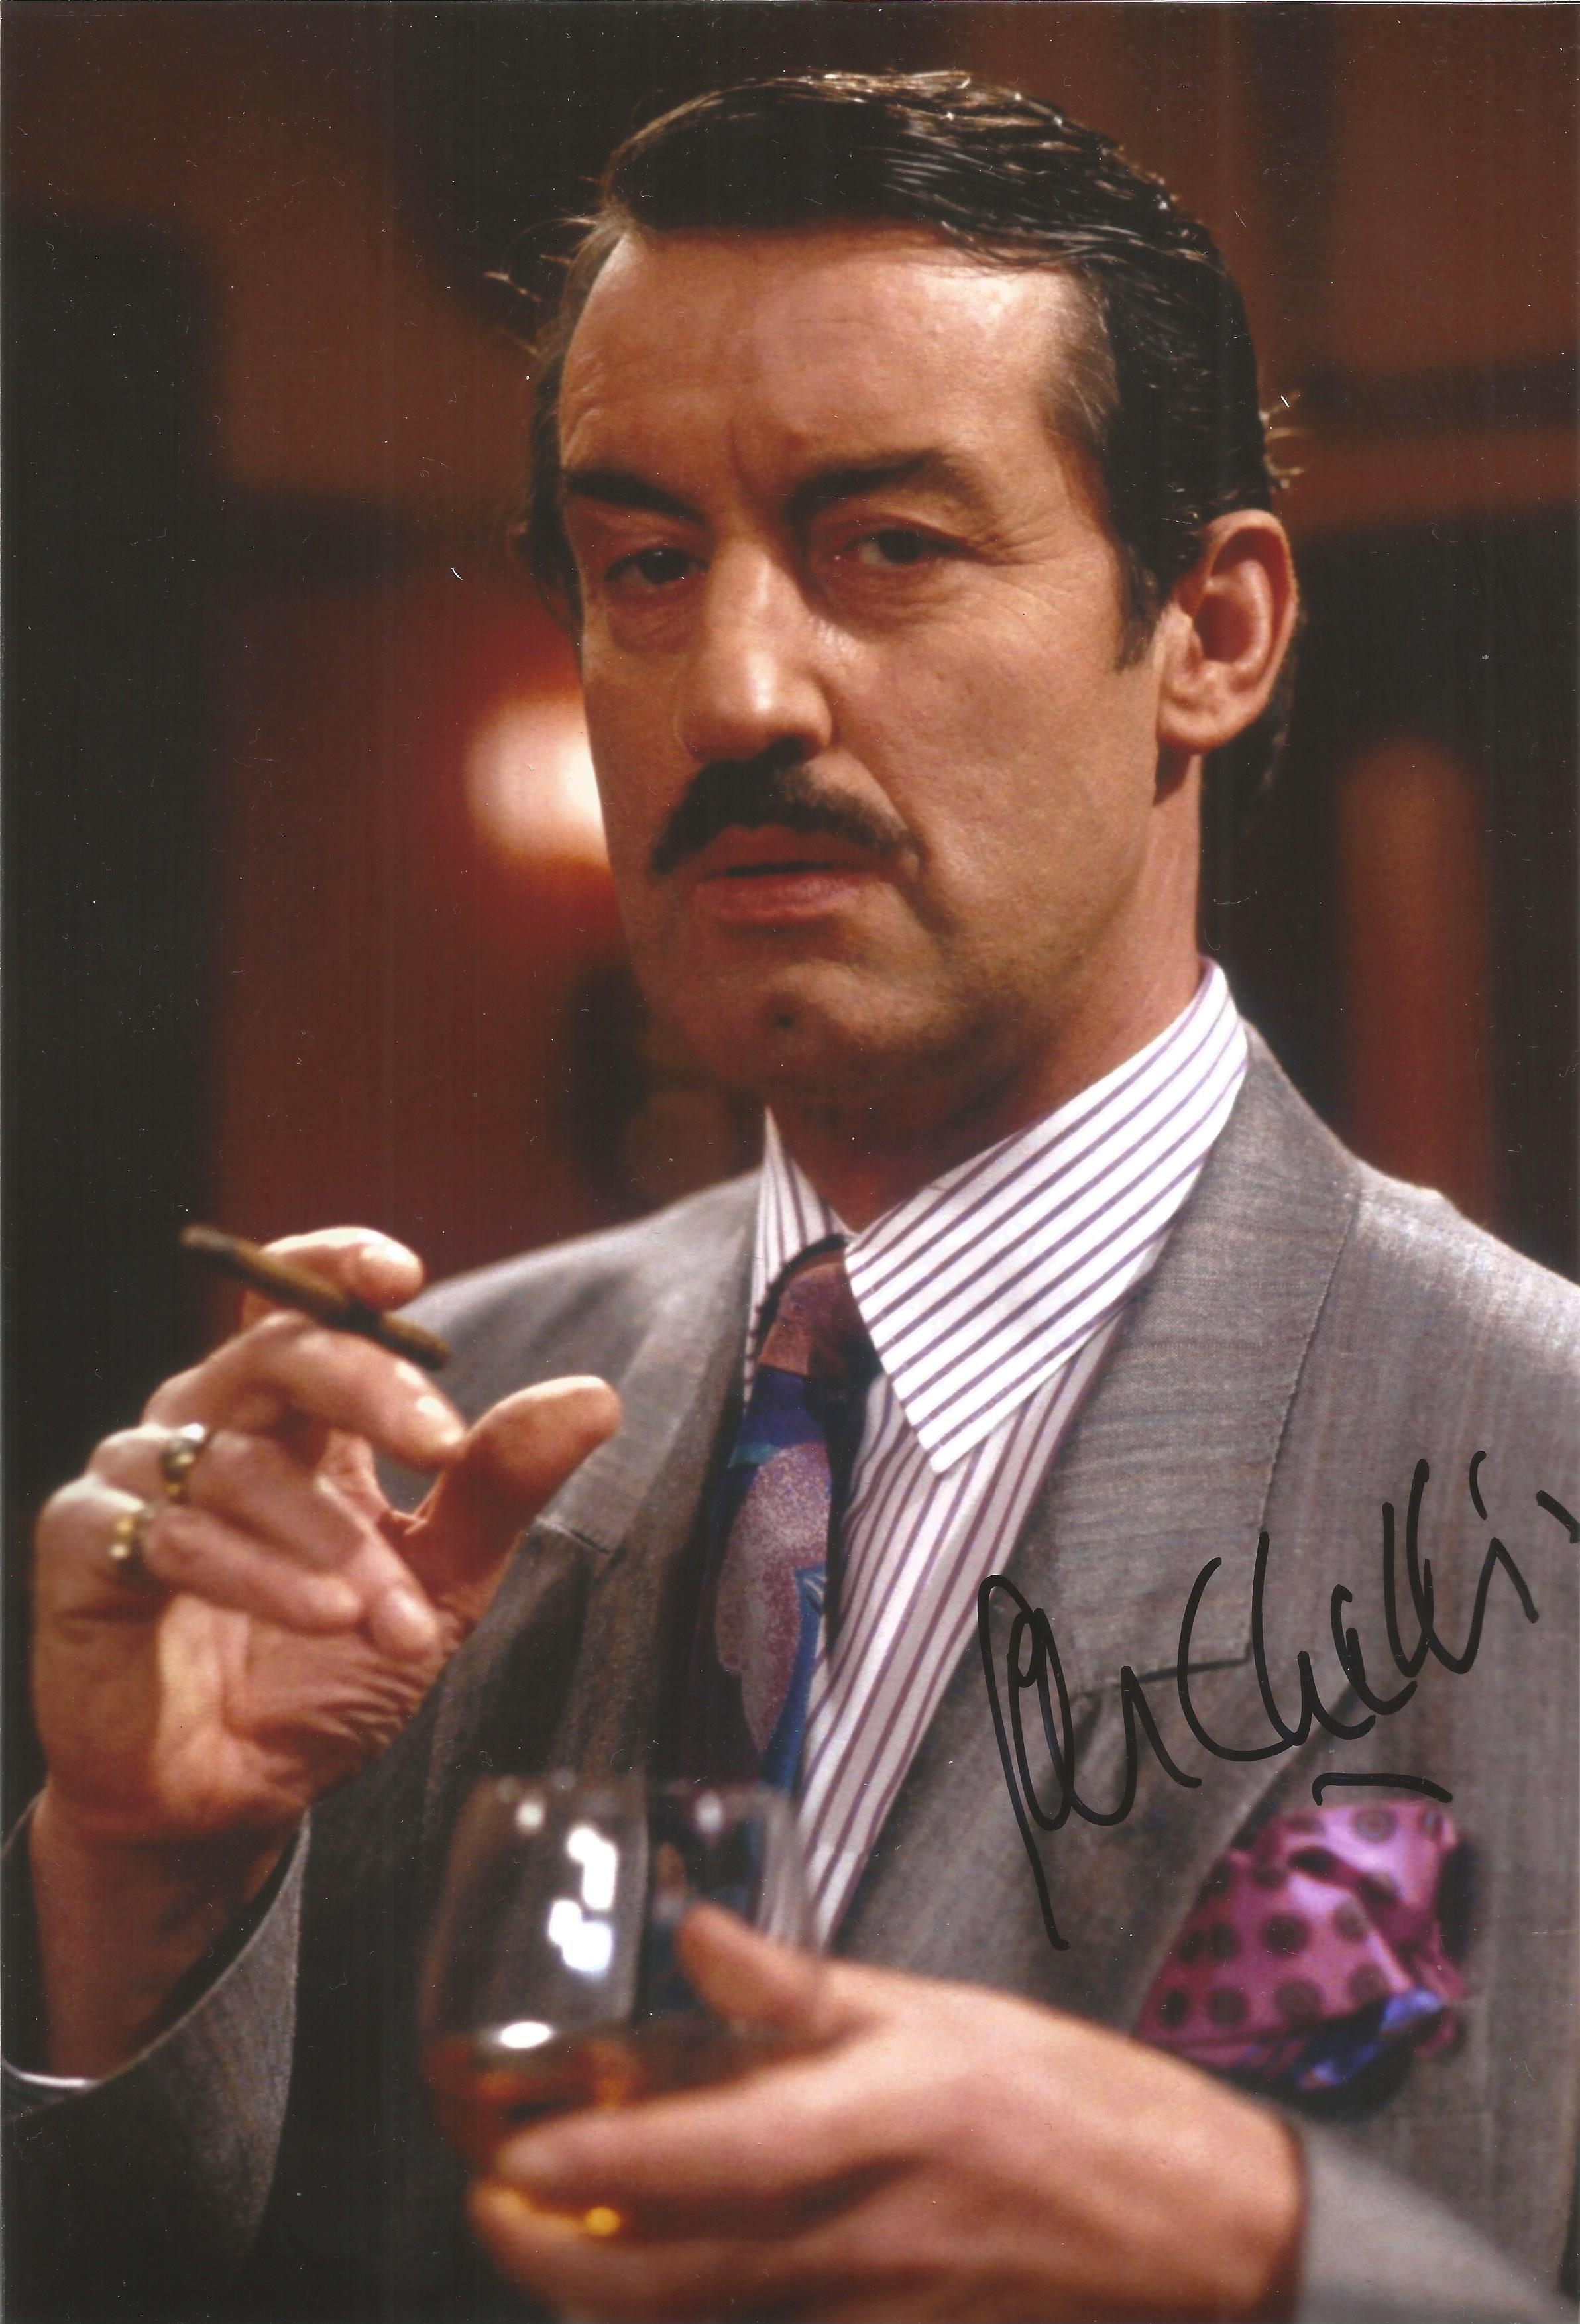 John Challis signed 12x8 Only Fools and Horses colour photo. John Spurley Challis (born 16 August